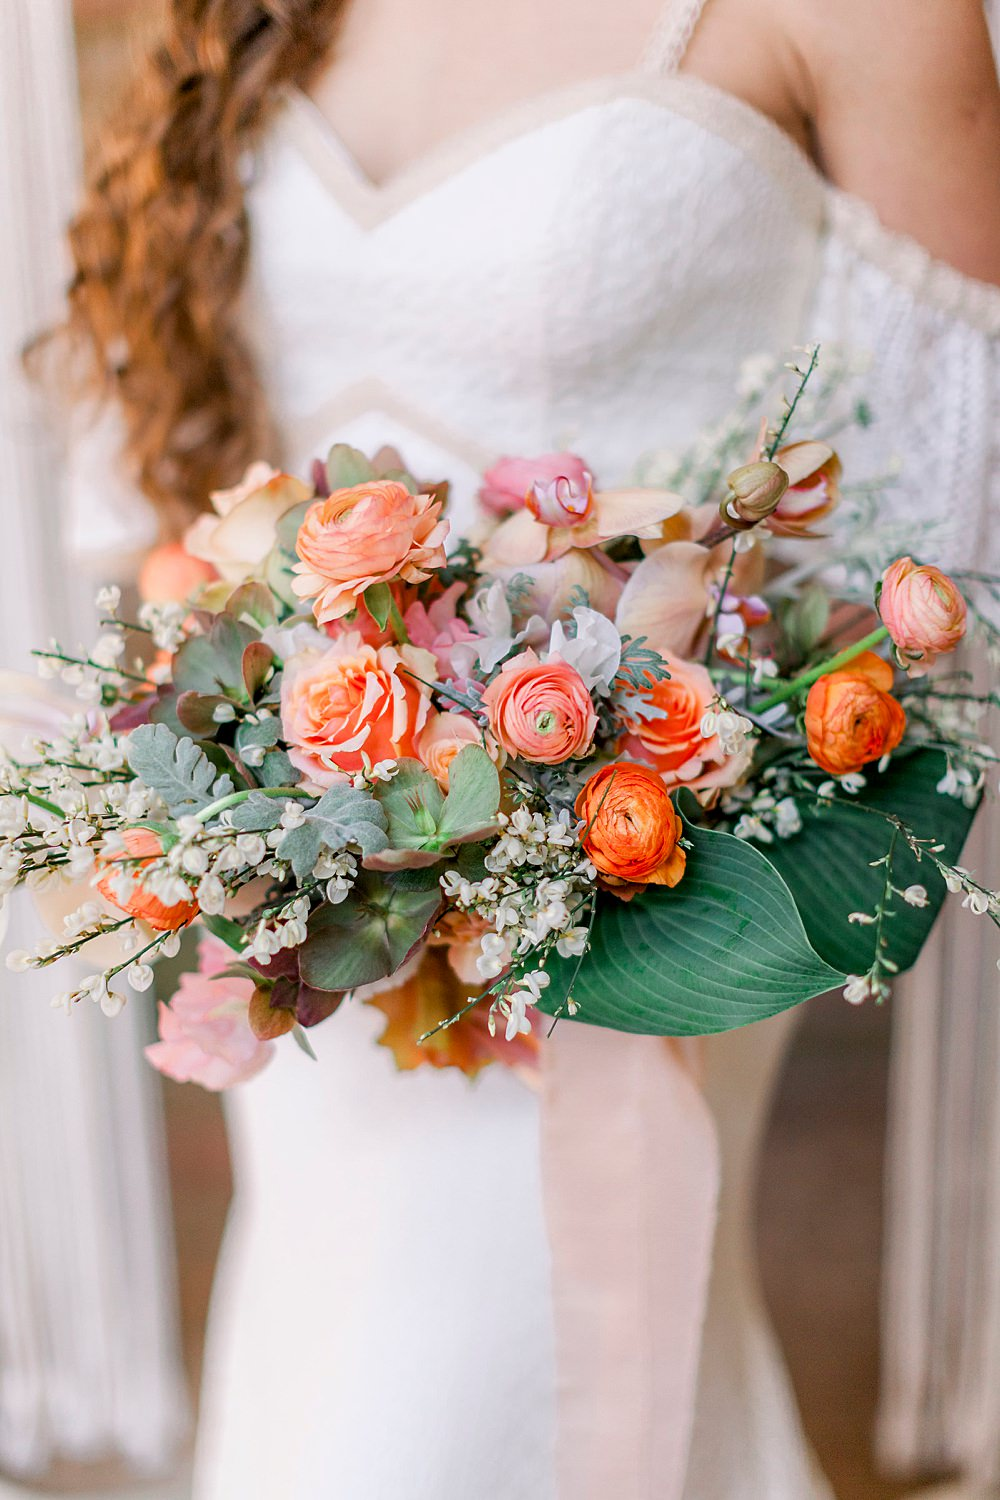 Bouquet Flowers Bride Bridal Coral Orange Silk Ribbons Rose Orchid Ranunculus Natural Boho Industrial Wedding Ideas Jo Bradbury Photography